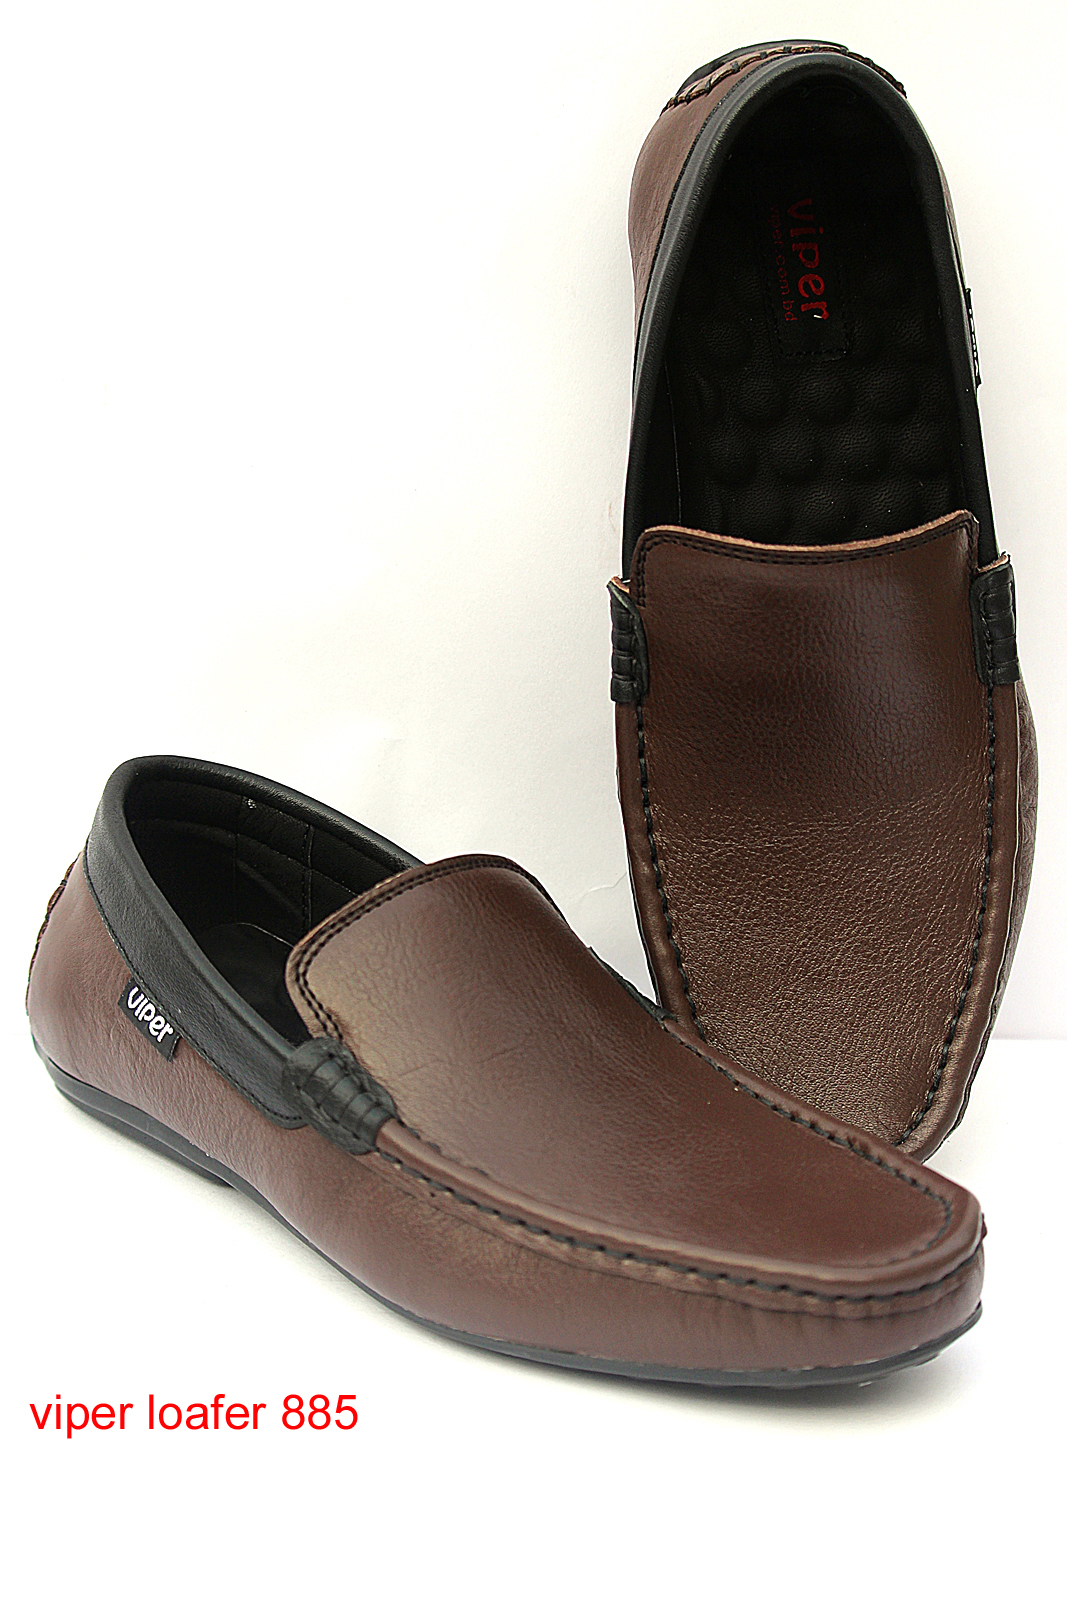 Smart Premium Loafer 885- Product-GC 201